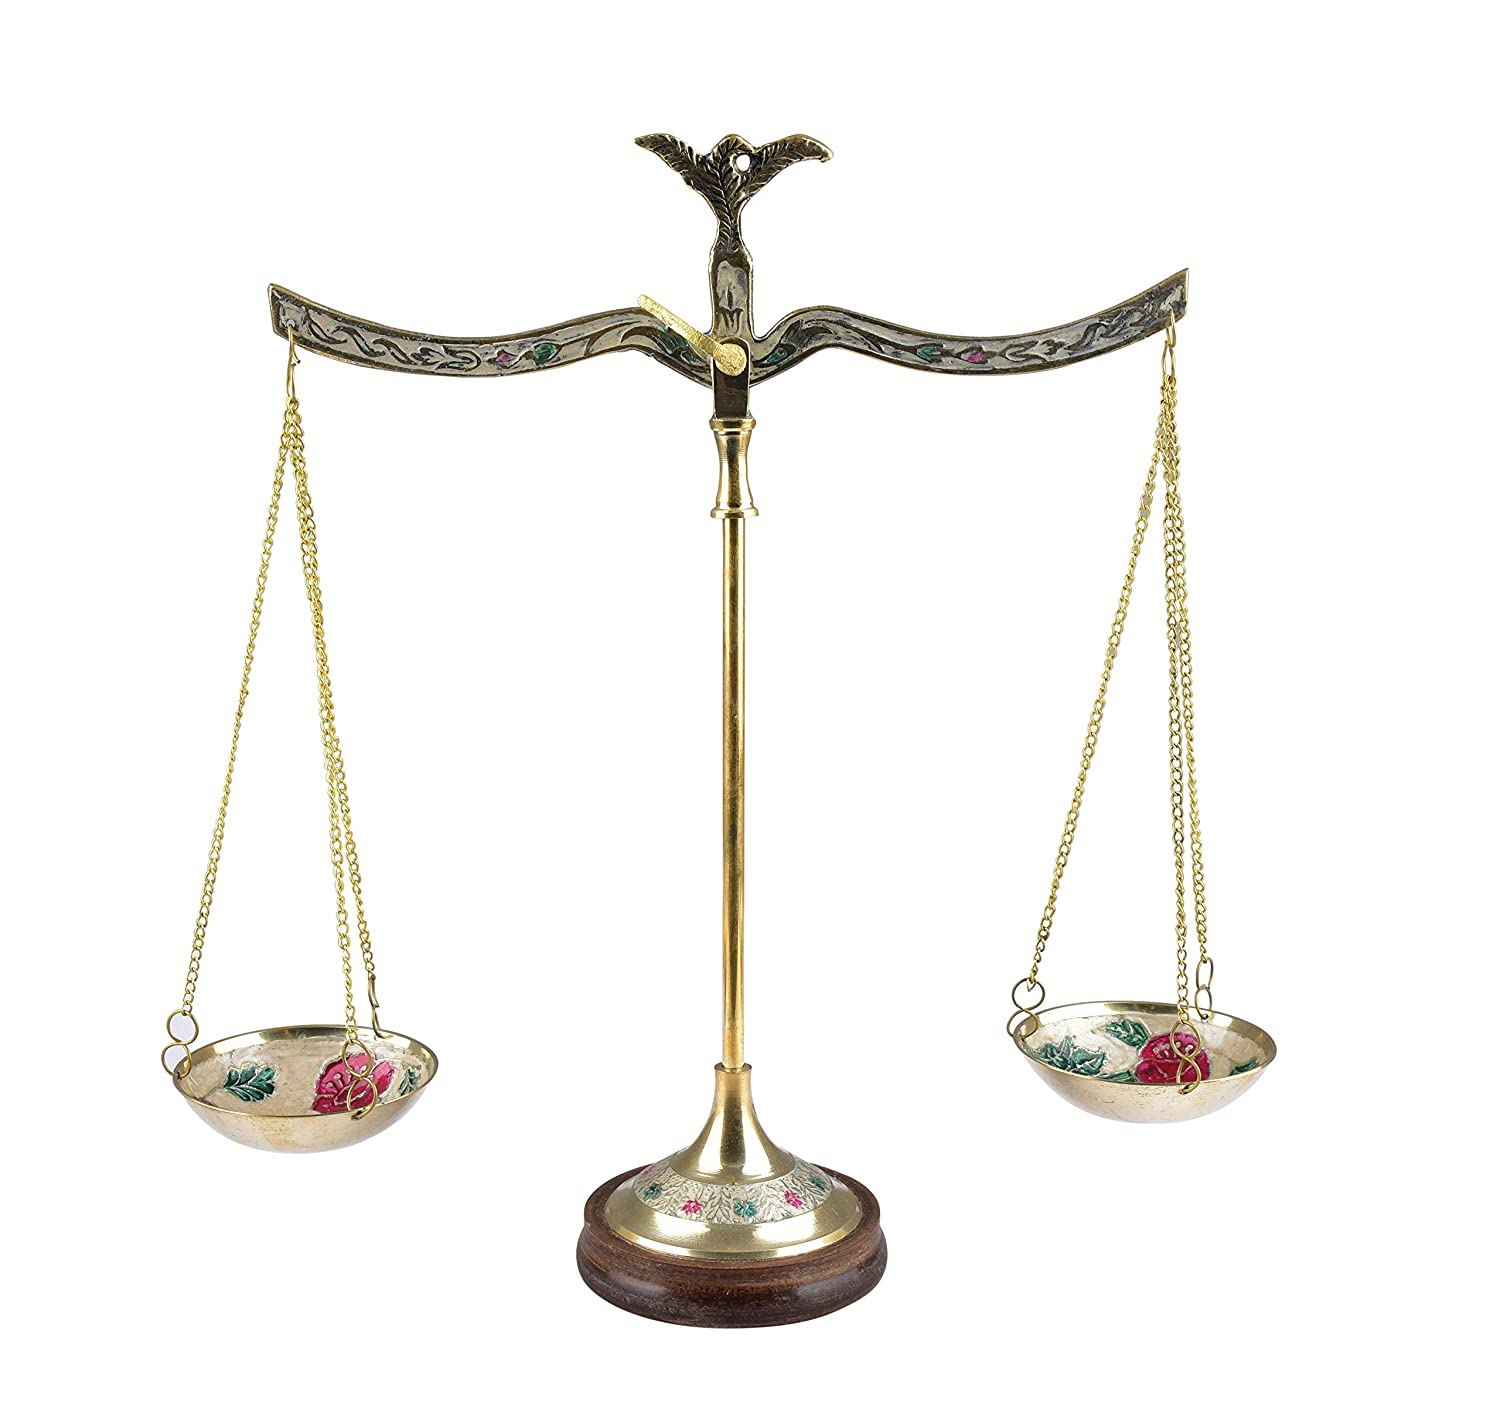 diollo Apothecary ScaleVintage Metal Weight Scale Home Décor Antique Weight Balancing Scale Taraju, Height 12 Inch, Golden